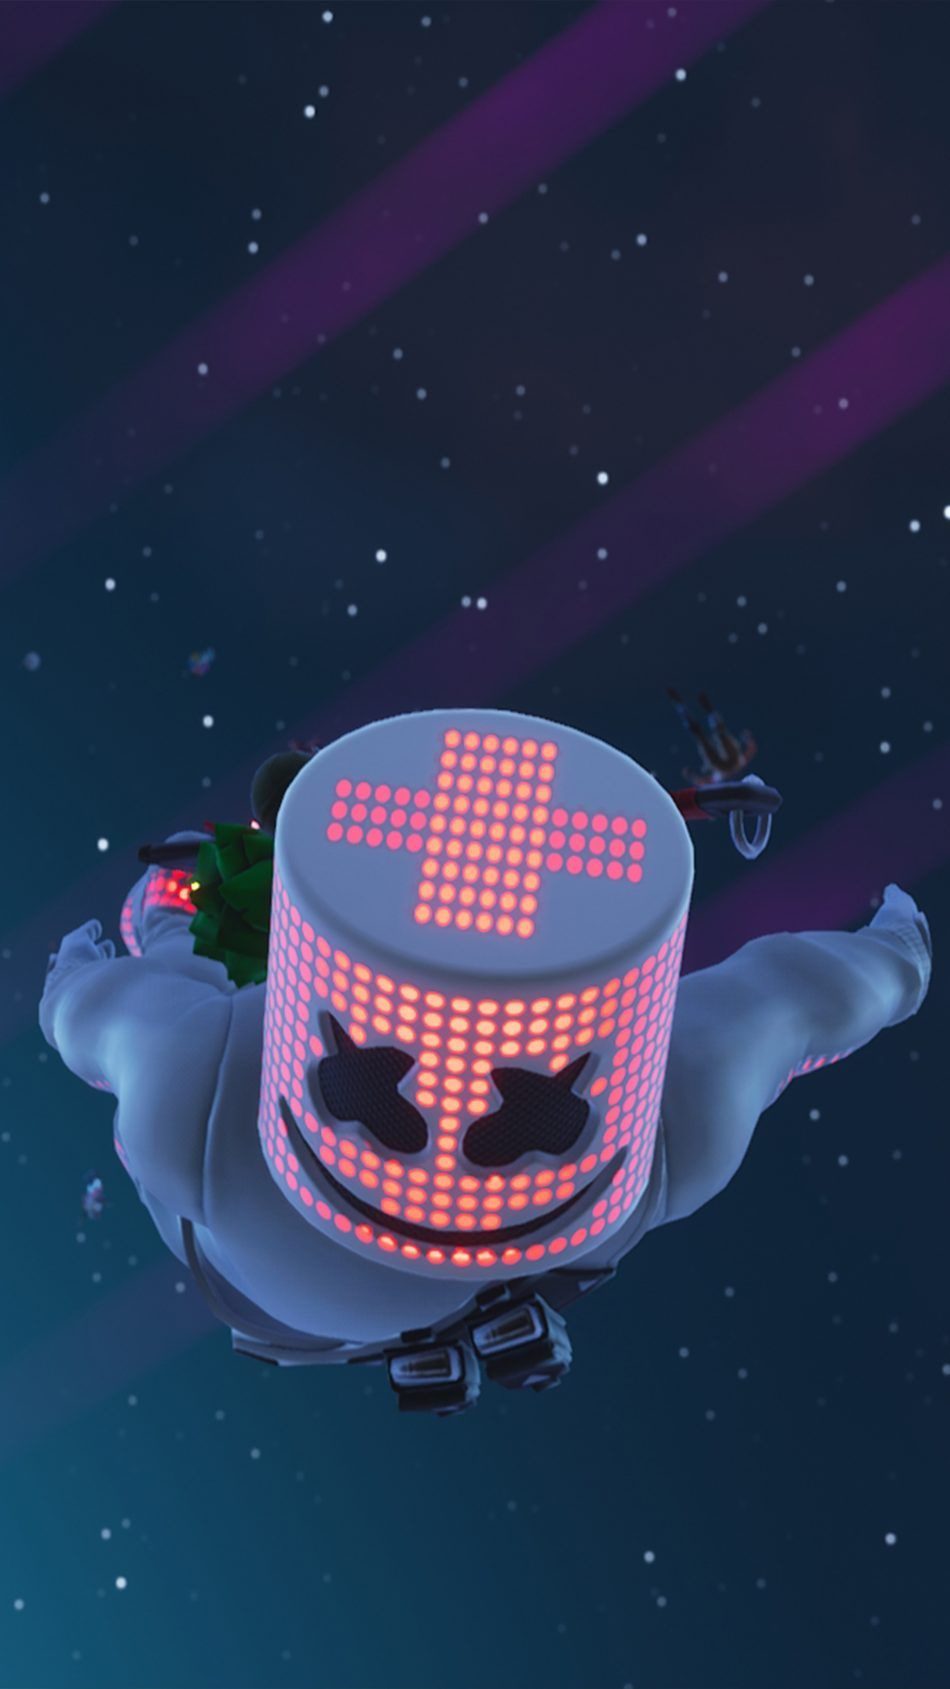 Marshmello In Air Fortnite 4k Ultra Hd Mobile Wallpaper Mobile Wallpaper Game Wallpaper Iphone Iphone Wallpaper